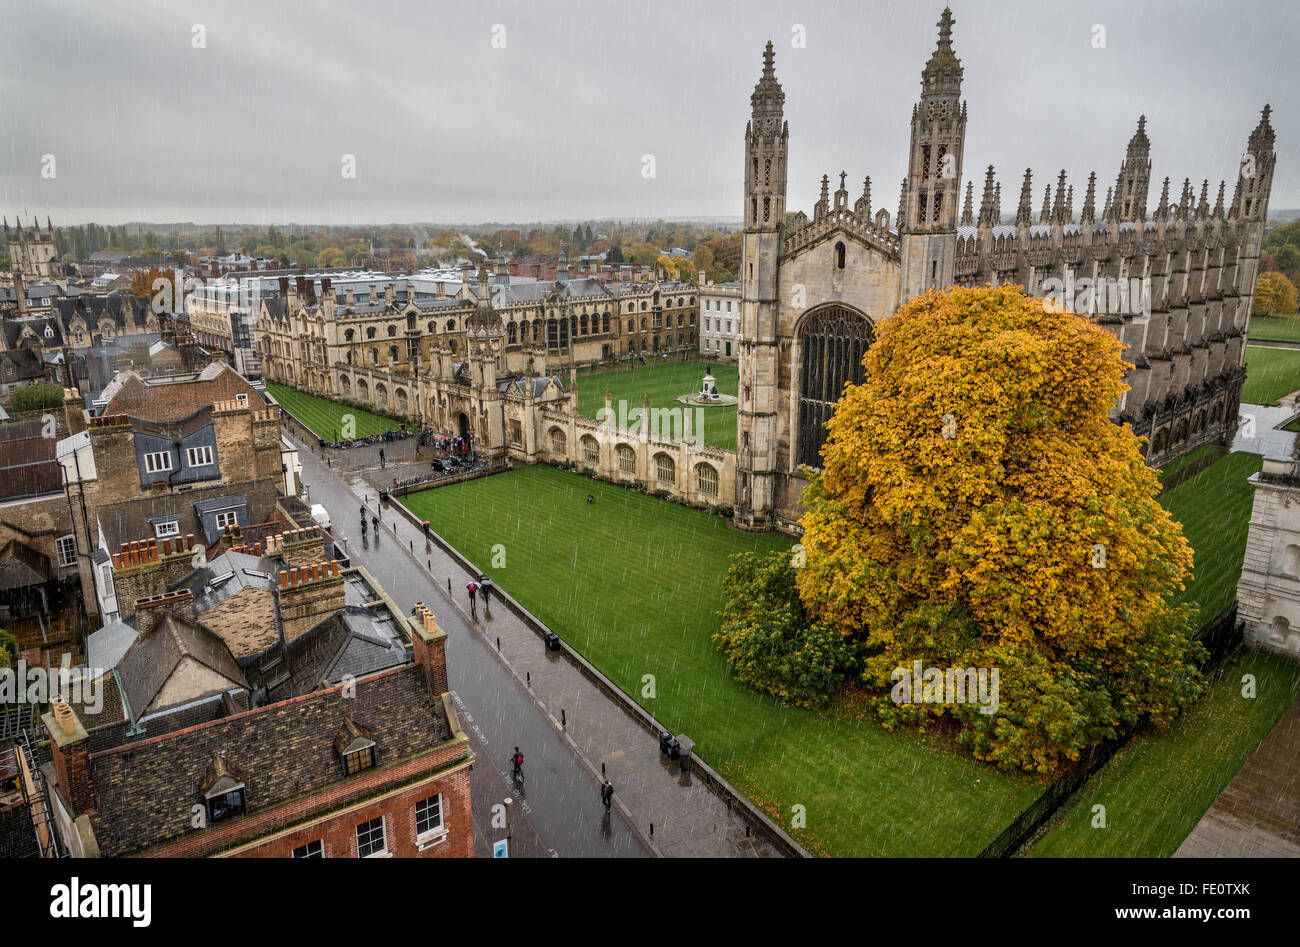 King's College, Cambridge from Great St Mary's church tower, raining - Stock Image